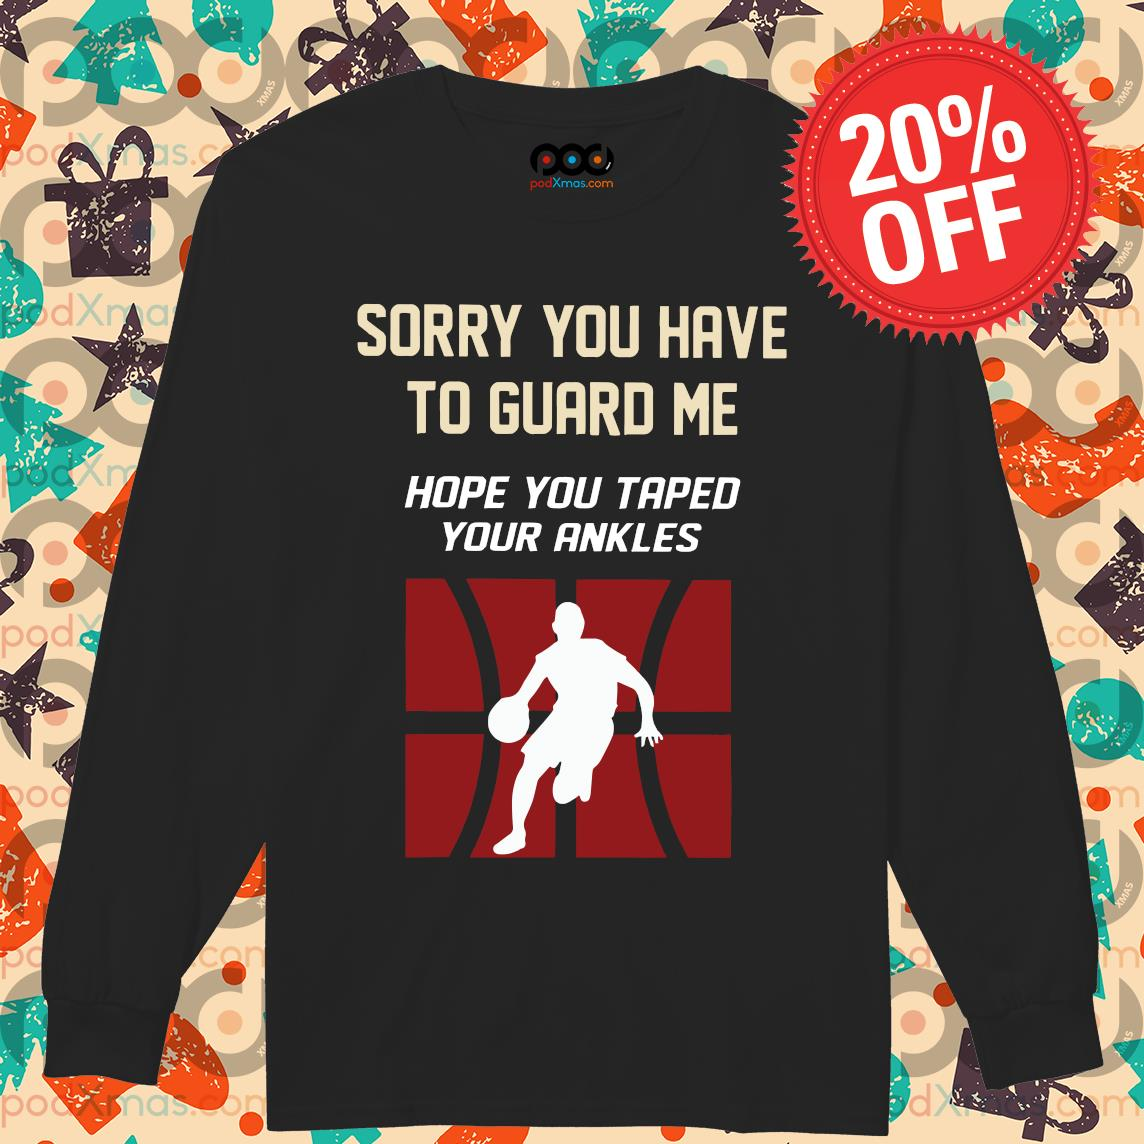 Sorry You Have To Guard Me Hope You Taped Your Ankles Basketball s Longsleeved PODxmas den